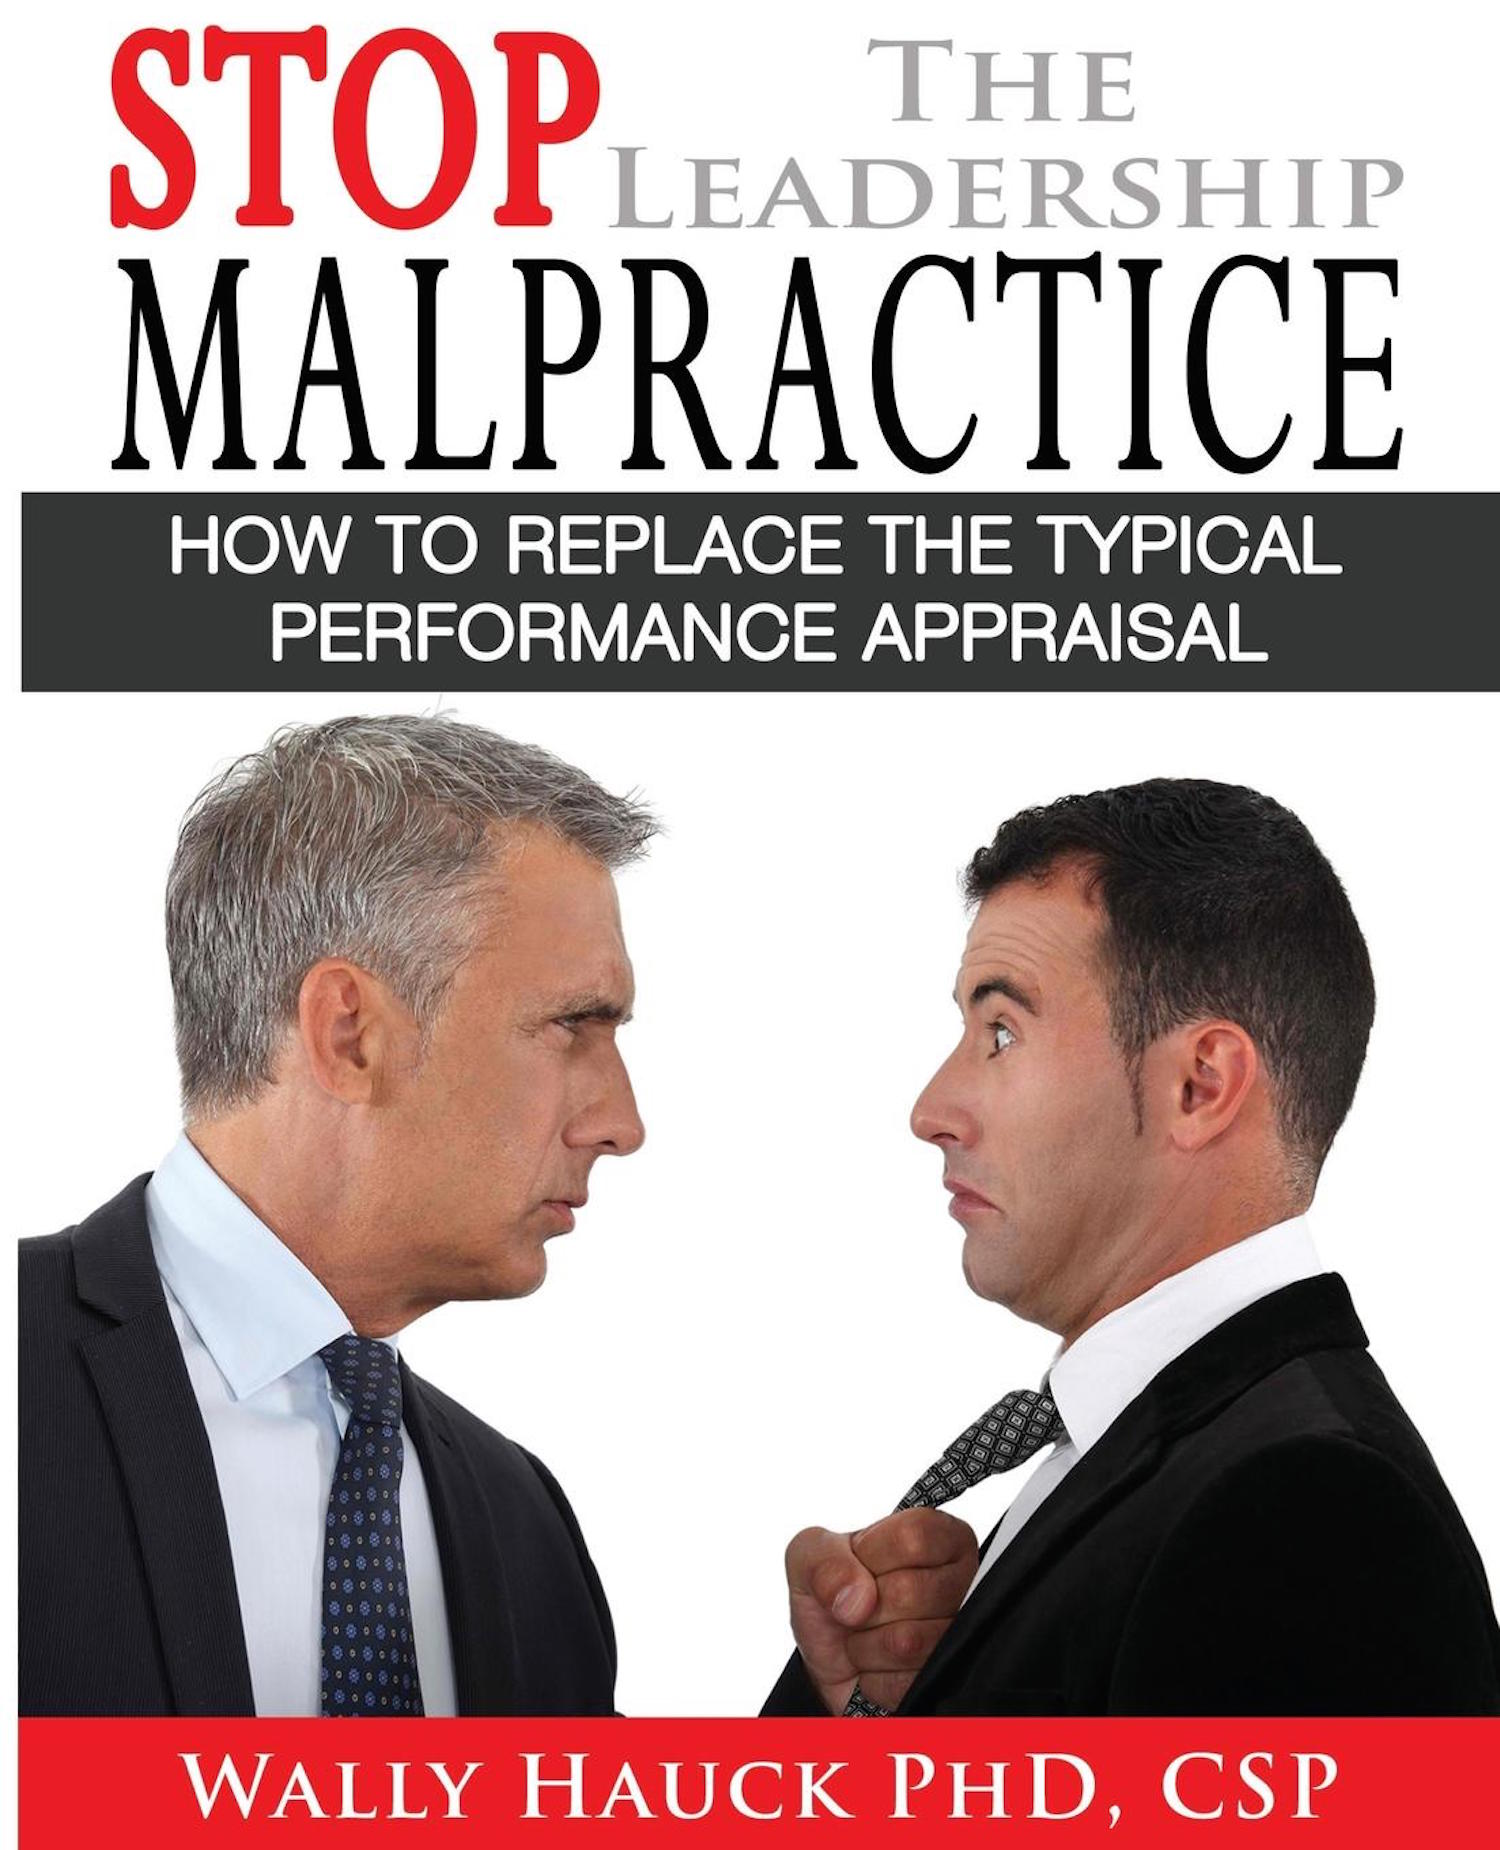 Stop the Leadership Malpractice: How to Replace the Typical Performance Appraisal